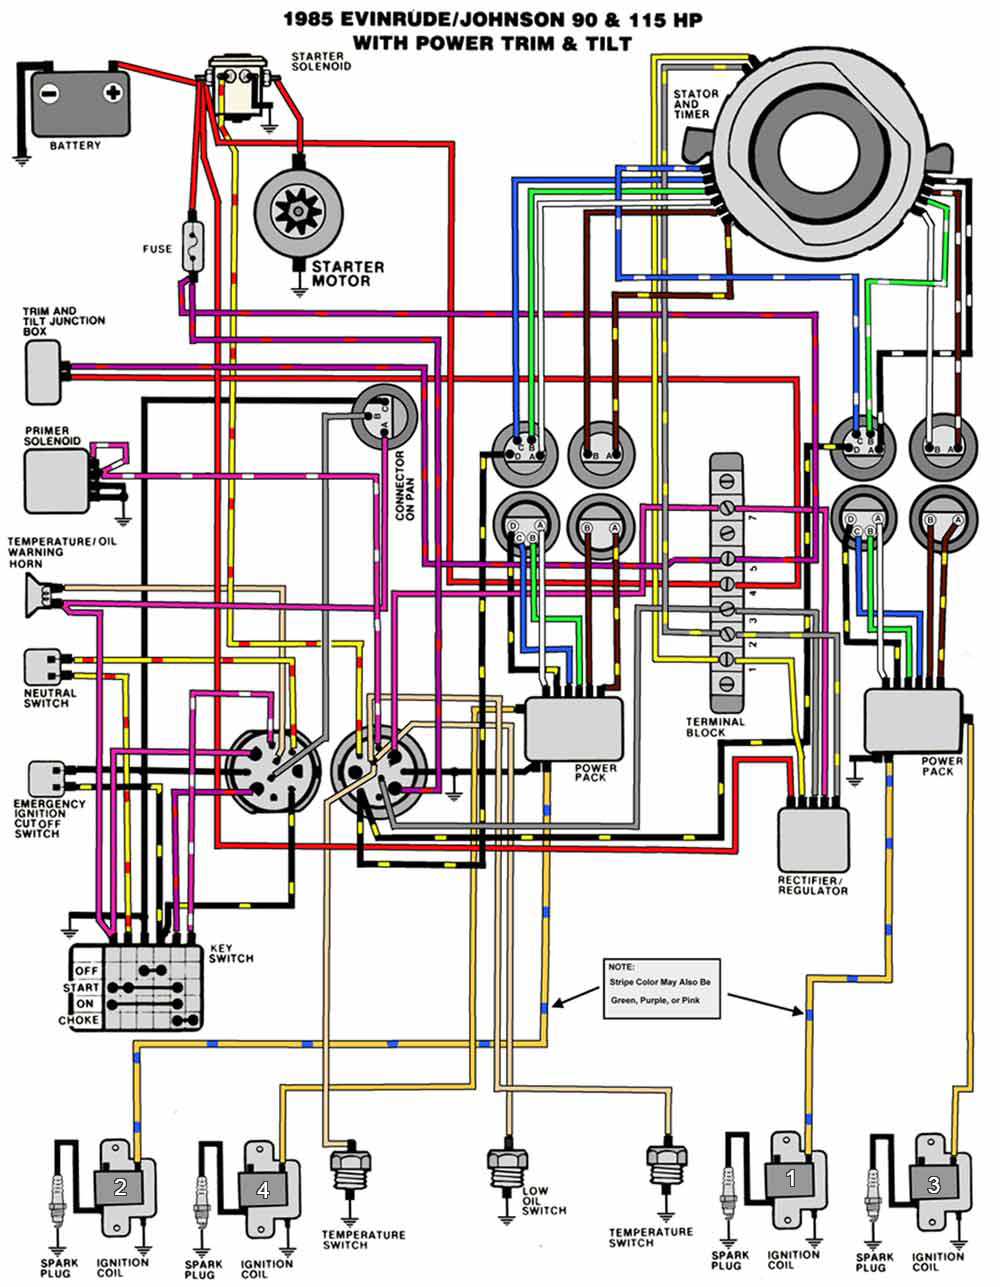 1985_90_115TnT mastertech marine evinrude johnson outboard wiring diagrams omc wiring harness diagram at pacquiaovsvargaslive.co